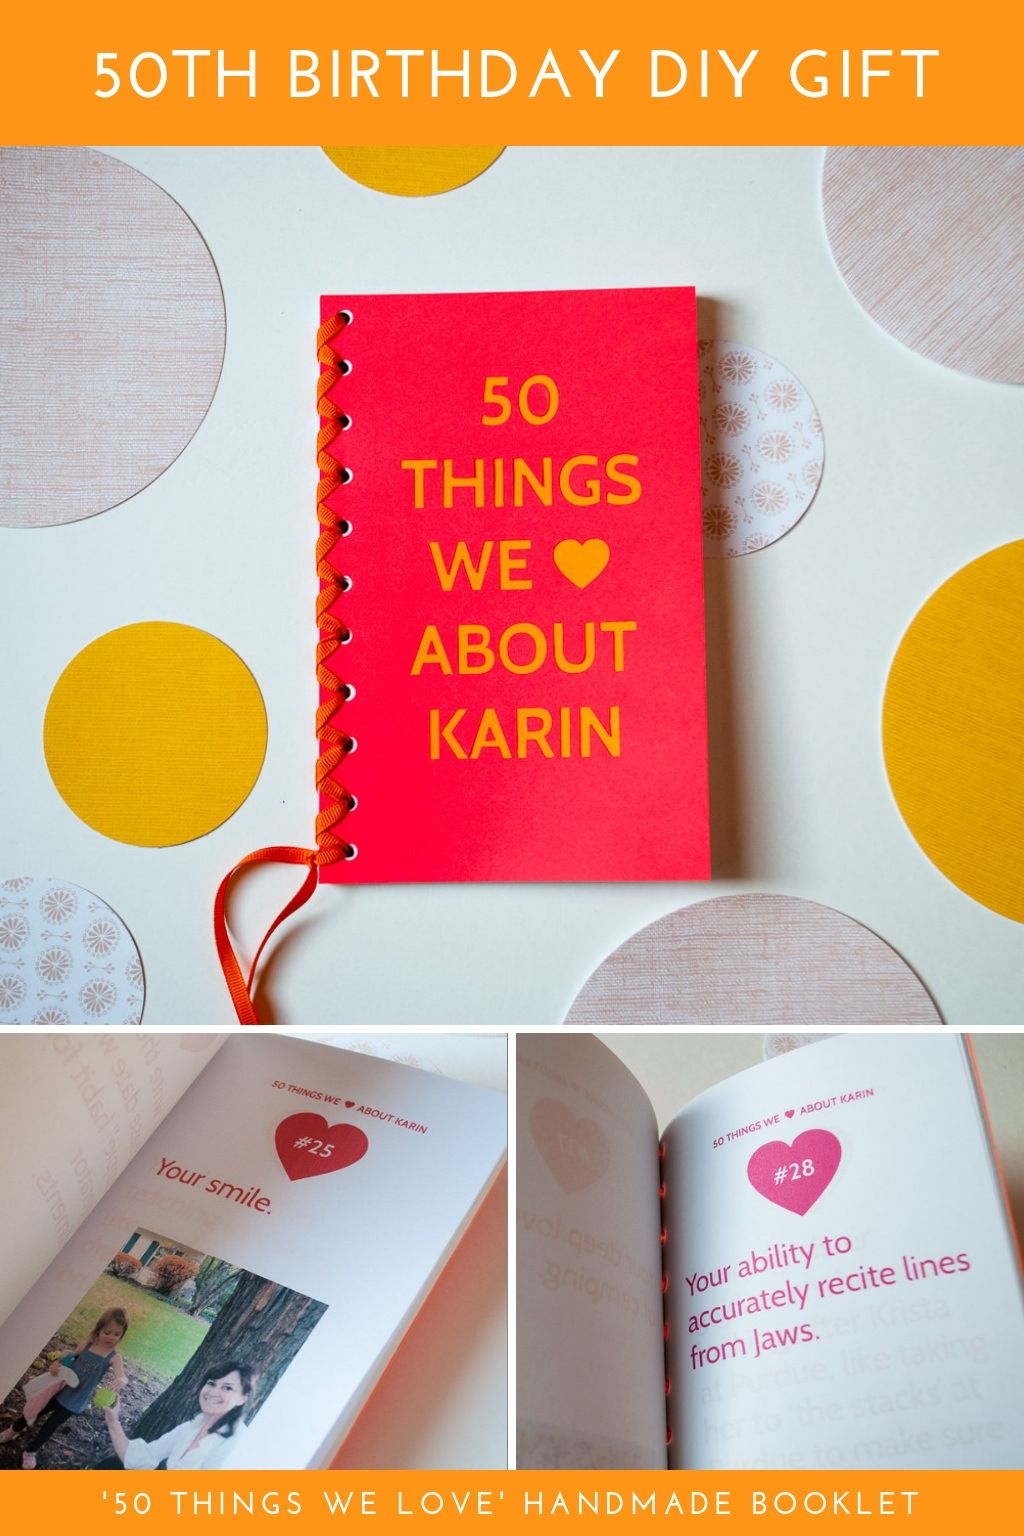 50 Things We Love About You Book 50th Birthday Diy Gift Idea Diy Birthday Gifts Birthday Diy Birthday Gifts For Brother